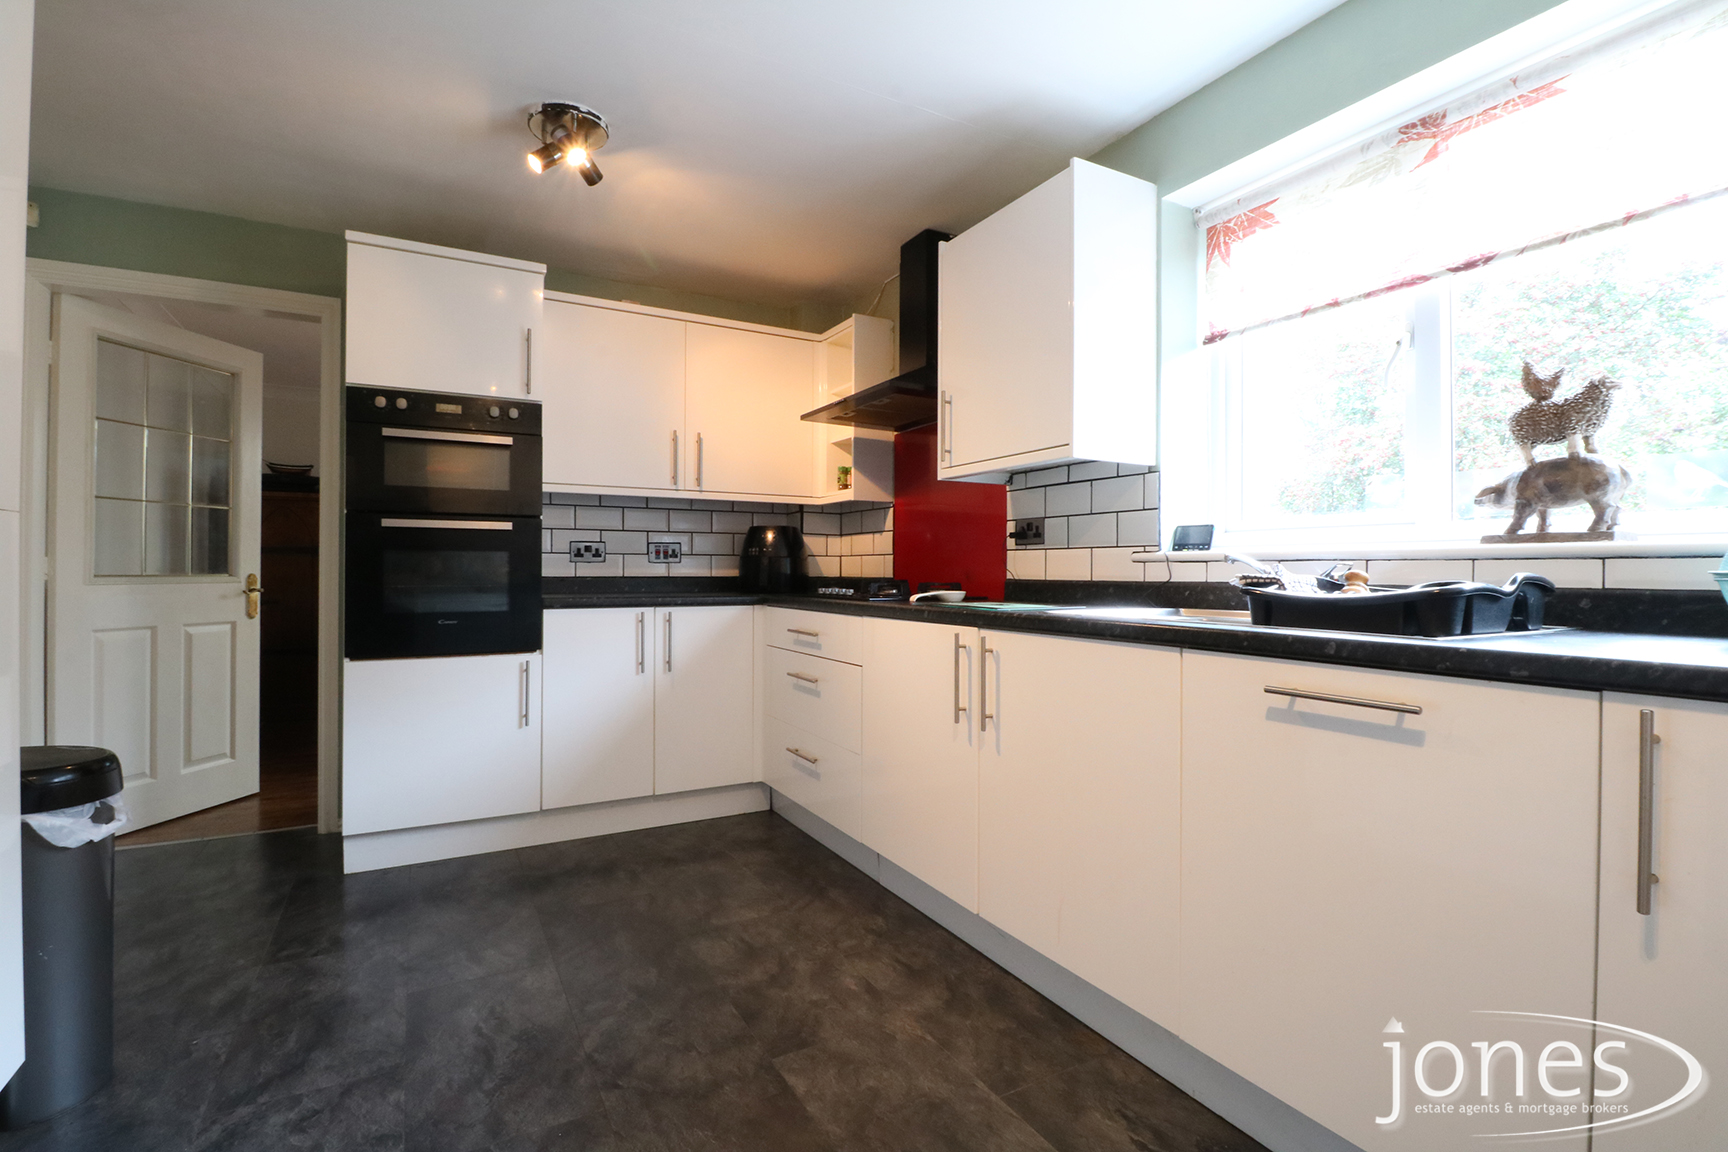 Home for Sale Let - Photo 05 West End Way , Low Hartburn,Stockton on Tees,TS18 3UA